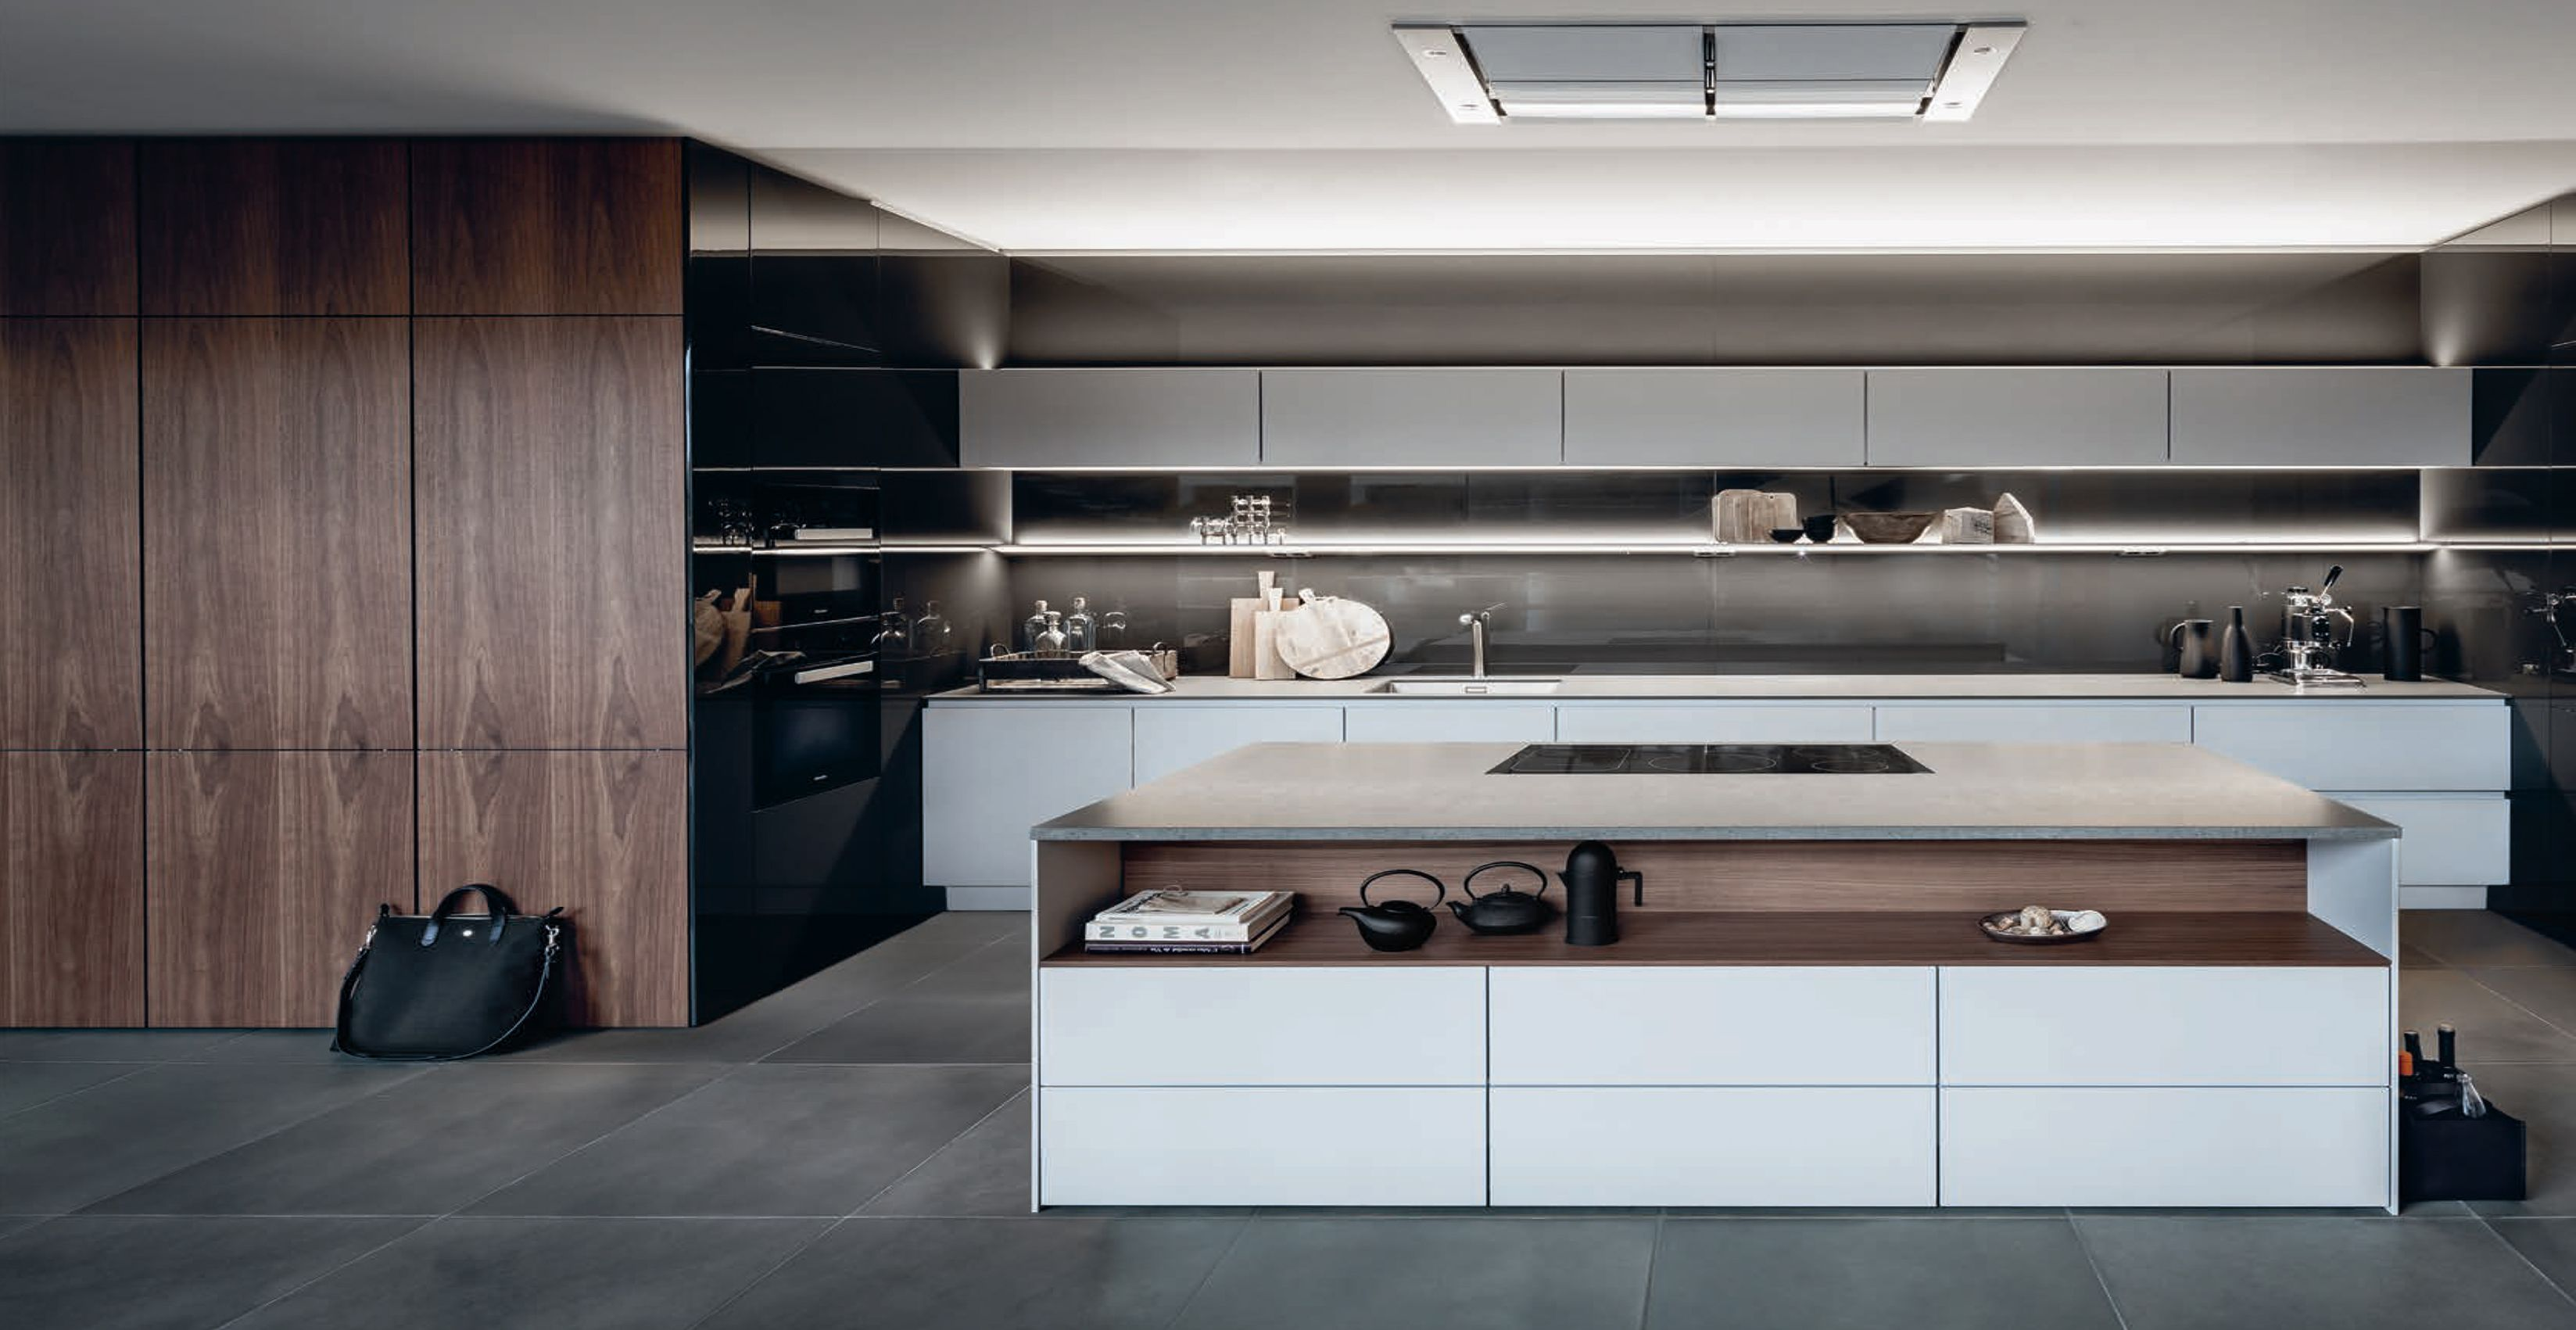 Bespoke Designer Kitchens